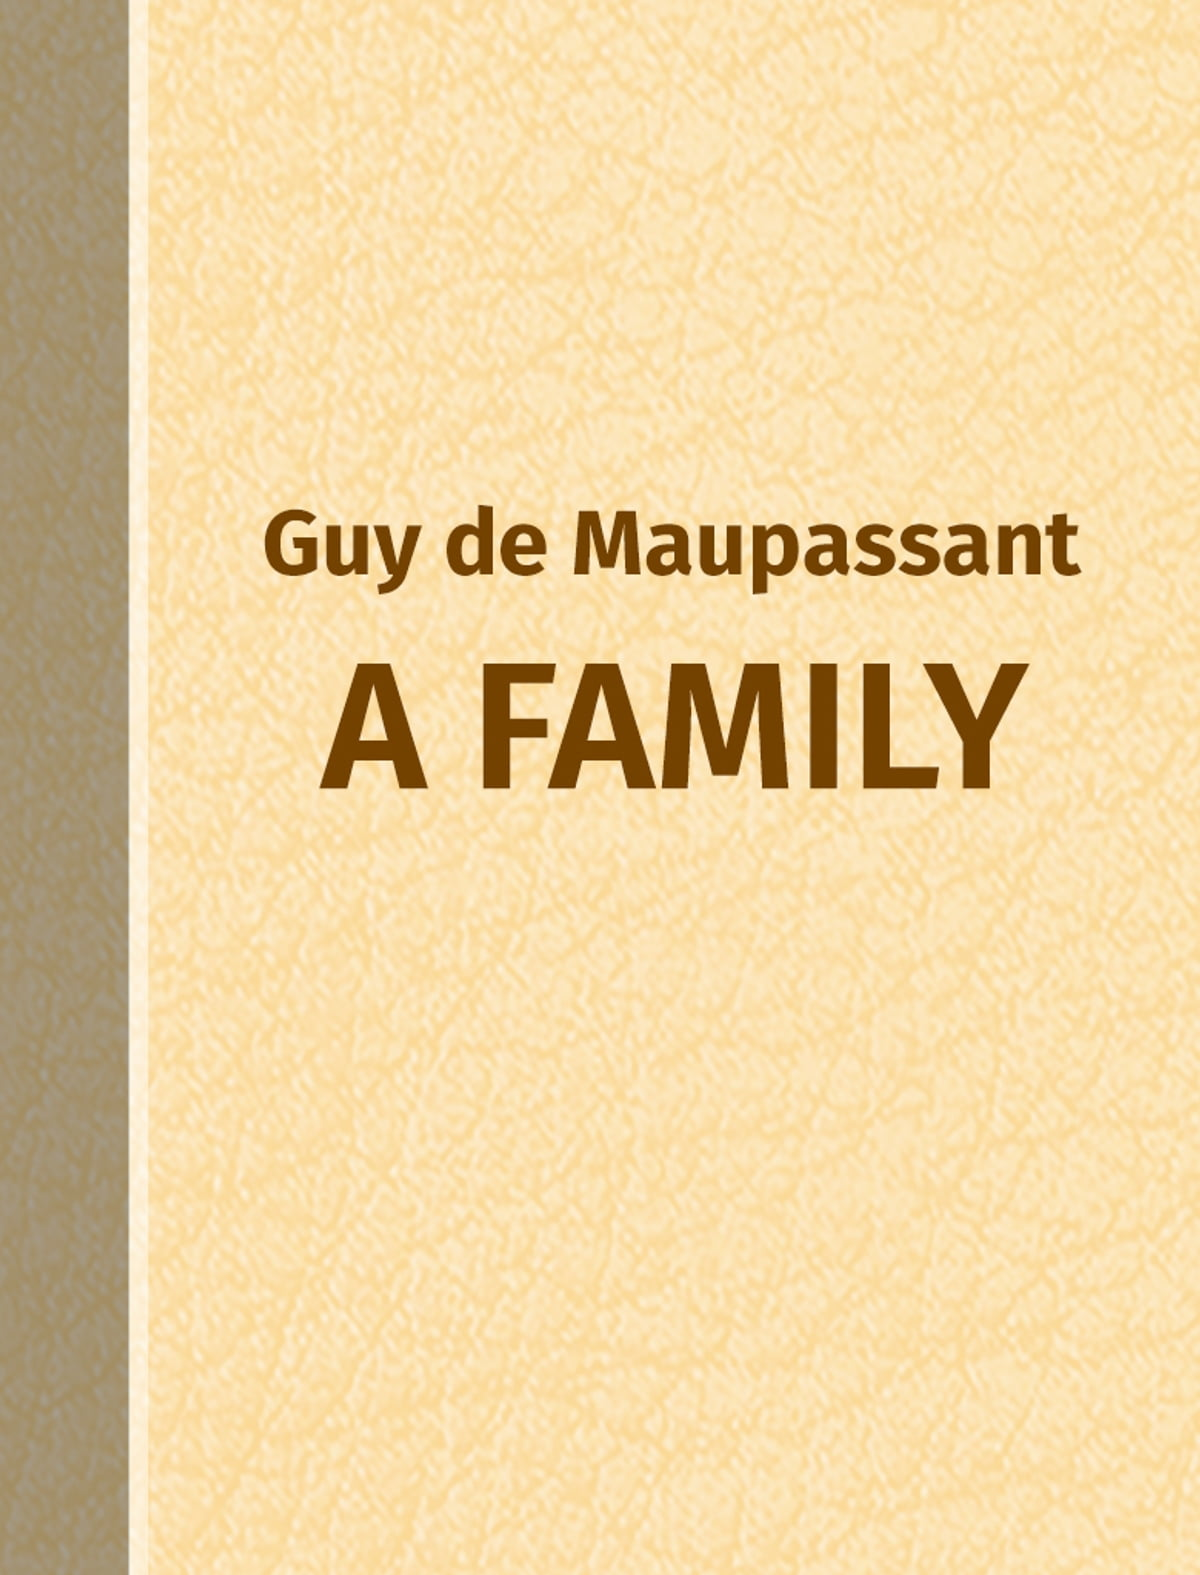 two friends by guy de maupassant essays Guy de maupassant was inspired by his mentor and developed a unique writing style, which combined both realism and naturalism (johnston) realism is a form of literature based on the actuality it.